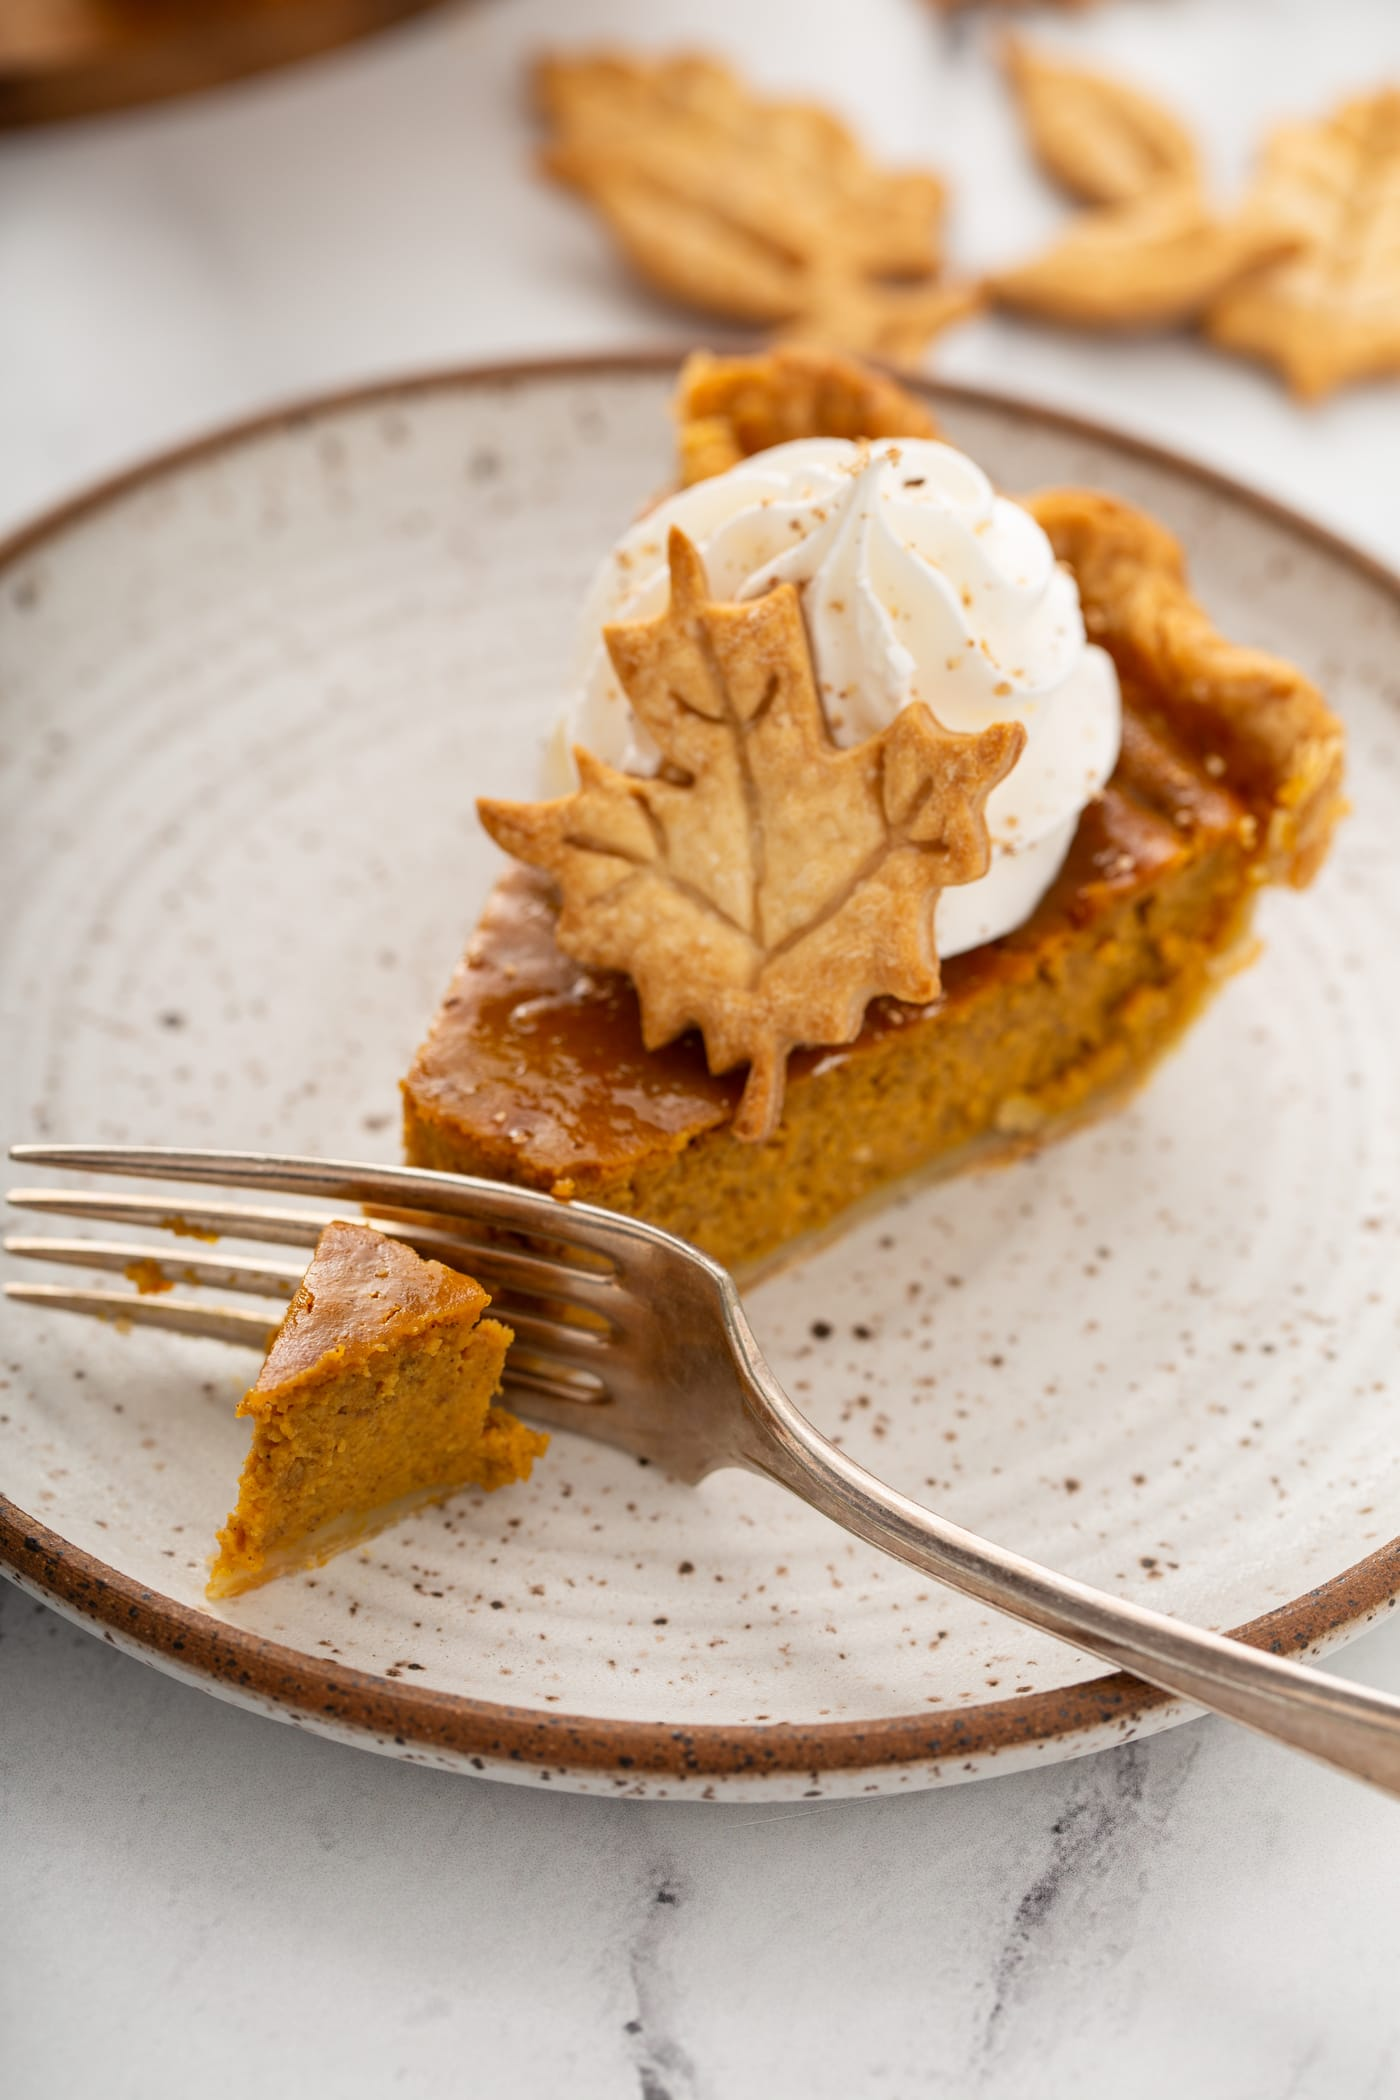 A photo of a slice of pumpking pie with a fork slicing through the end topped with piped whipped cream and a pie crust leaf.